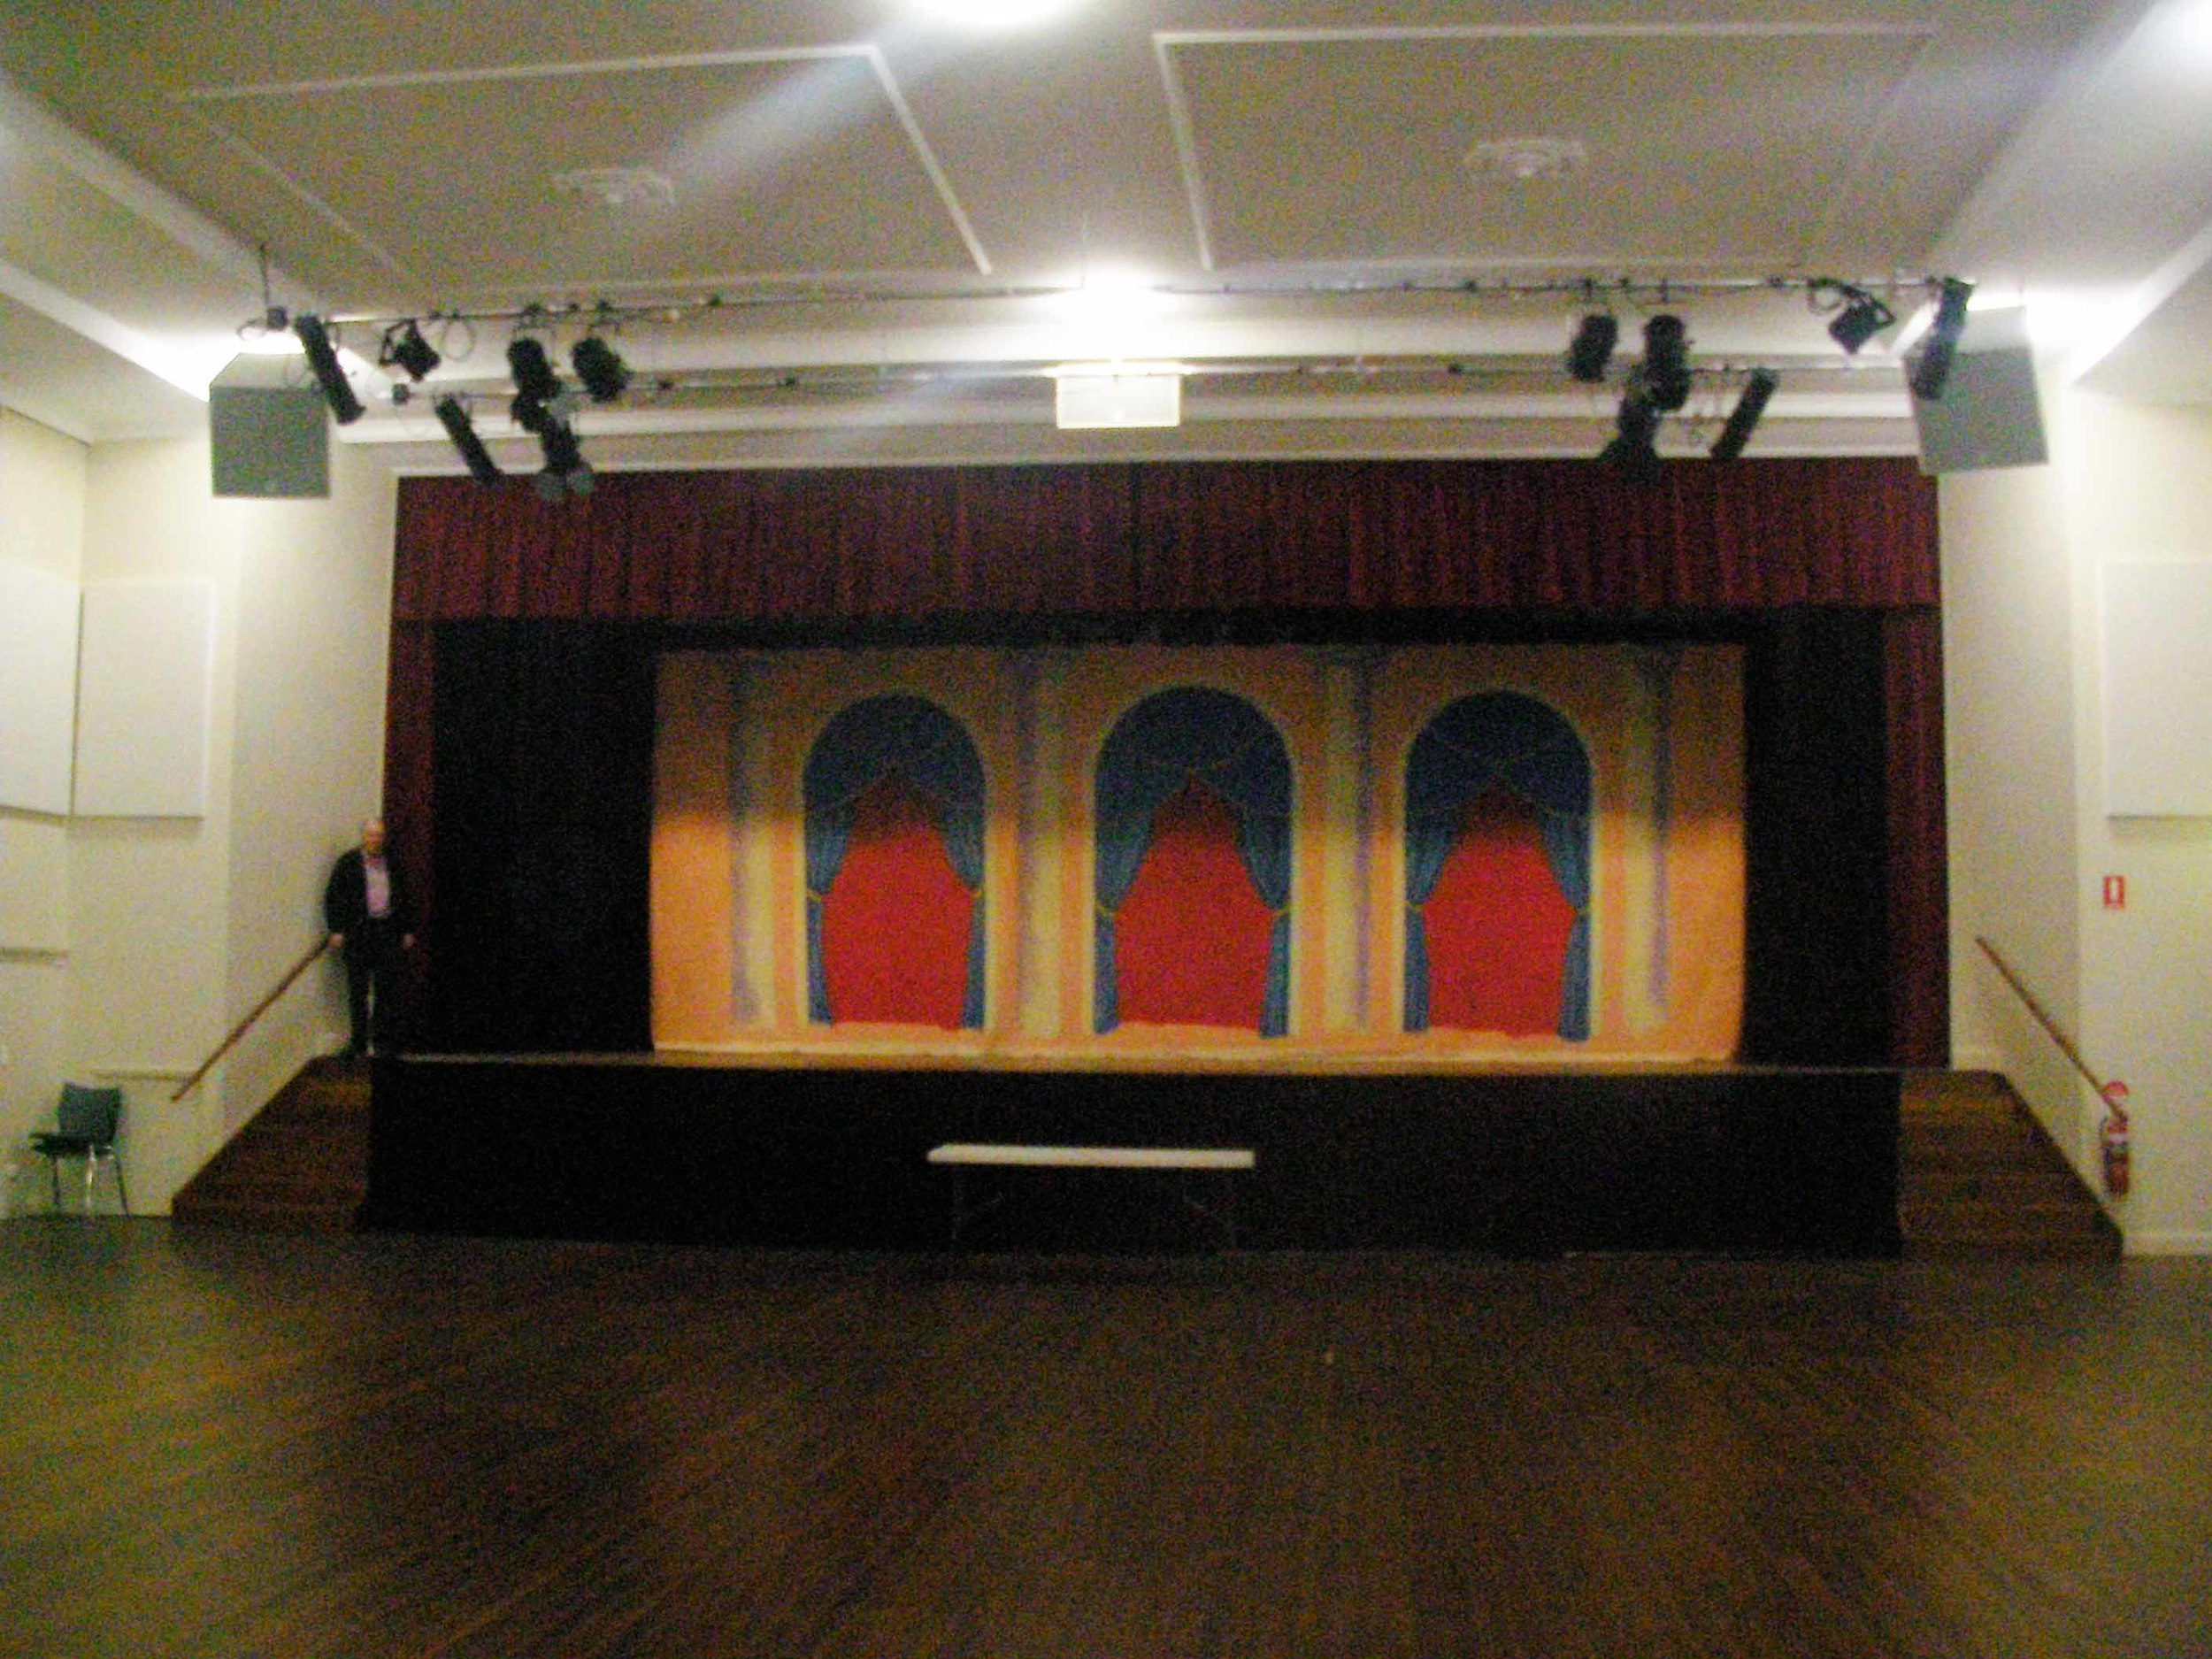 New-curtain-at-Maleny-Community-Centre-and-Phil-Simmons-ps-low-res.jpg